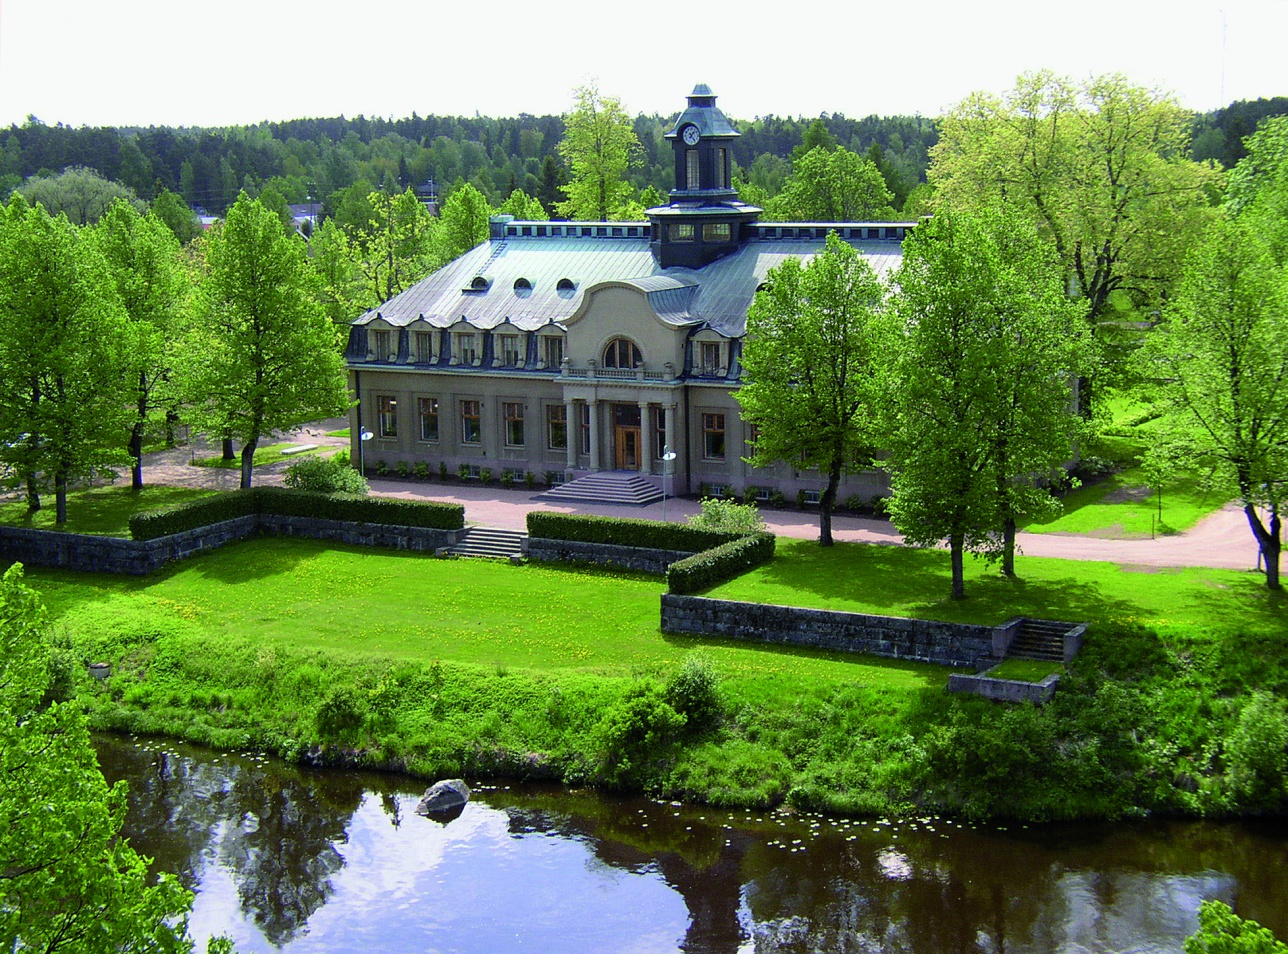 The Ahlström Ironworks in Noormarkku is one of Finland's largest and most magnificent ironworks areas.